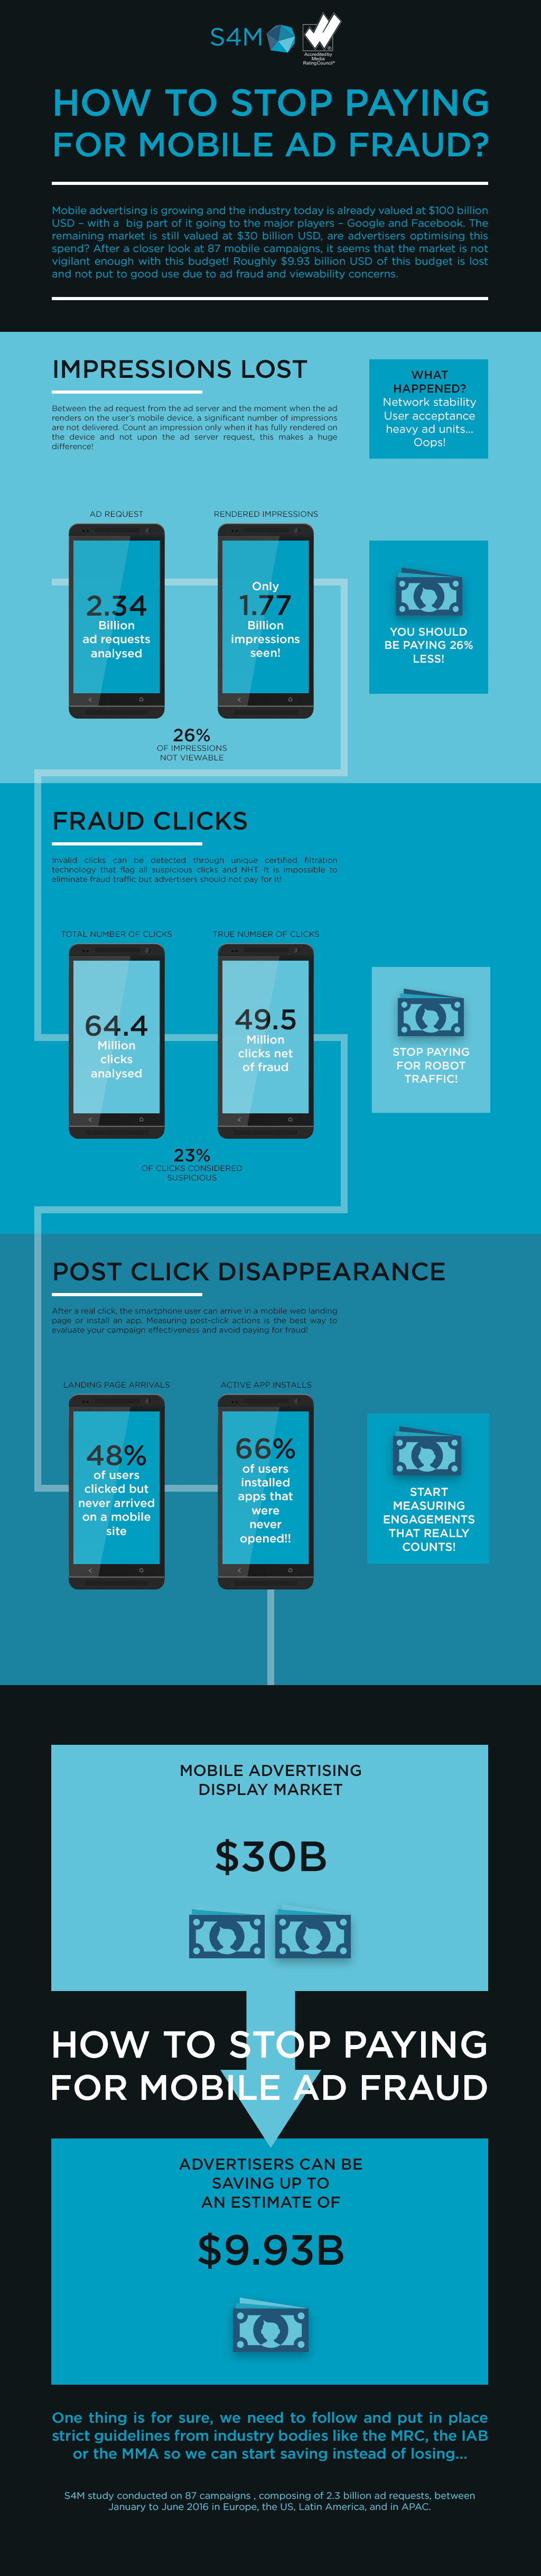 Infographic: $9.93bn Lost to Mobile Ad Fraud Annually